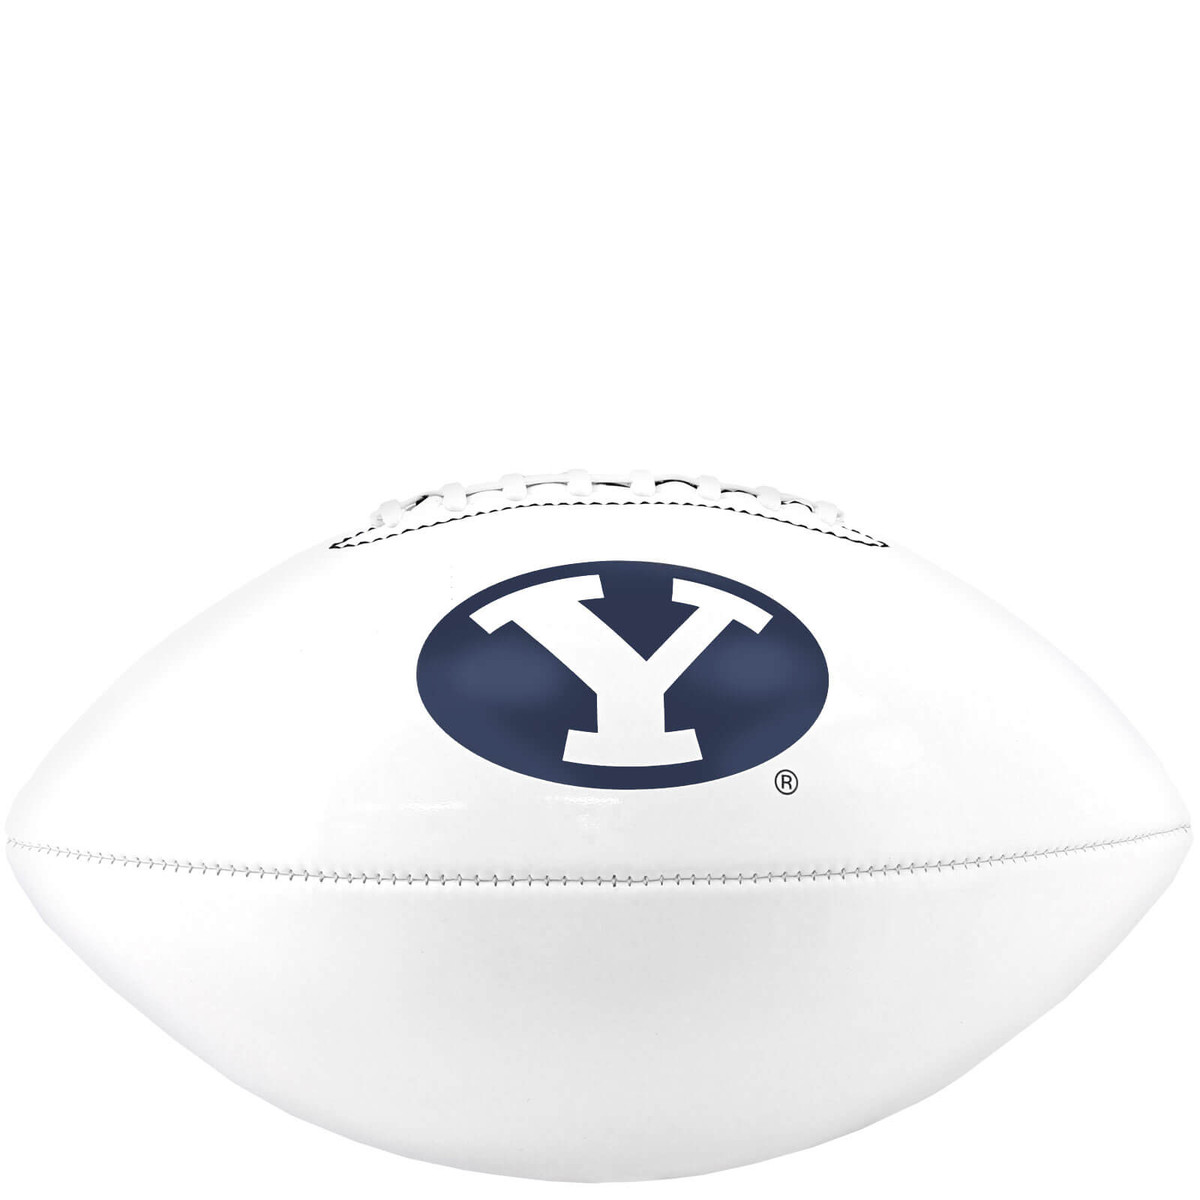 BYU Products > BYU Accessories > Sports Equipment